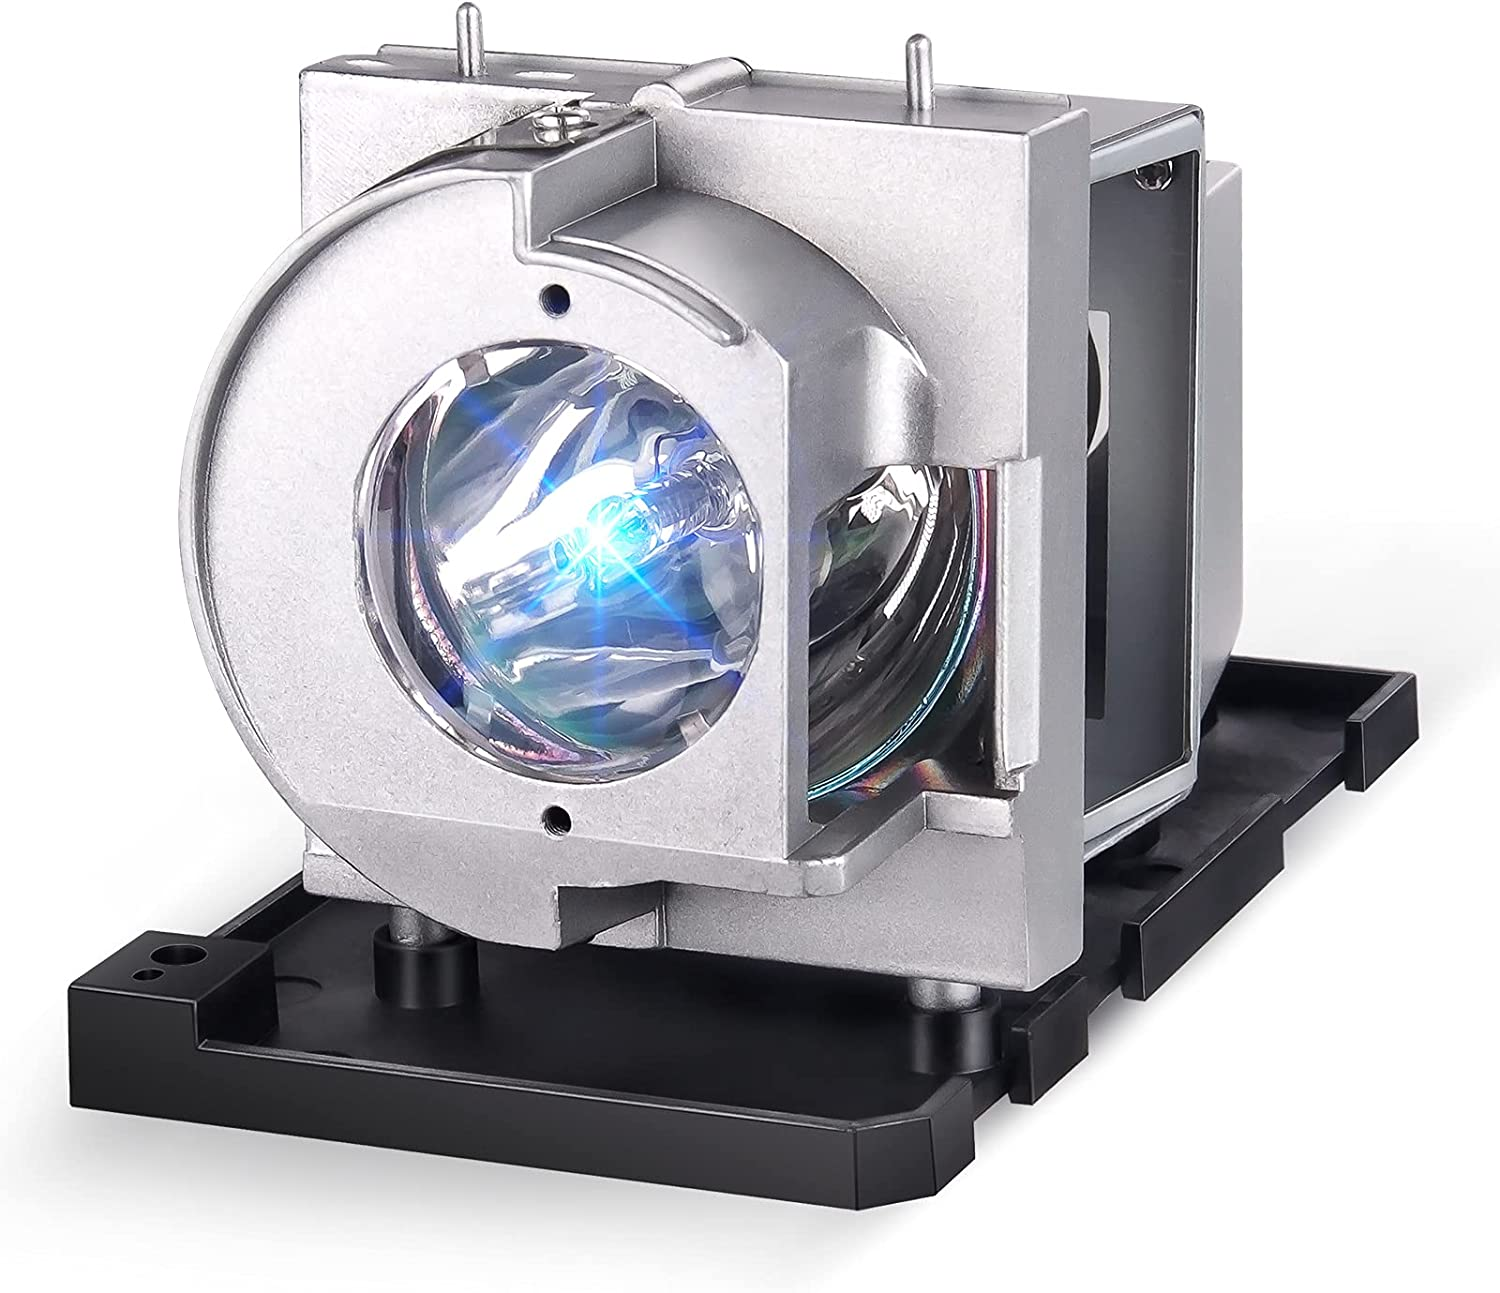 IGTOD 1026952/BL-FU260B Projector Lamp with Housing for Smart Board U100 U100w Replacement Projector Lamp